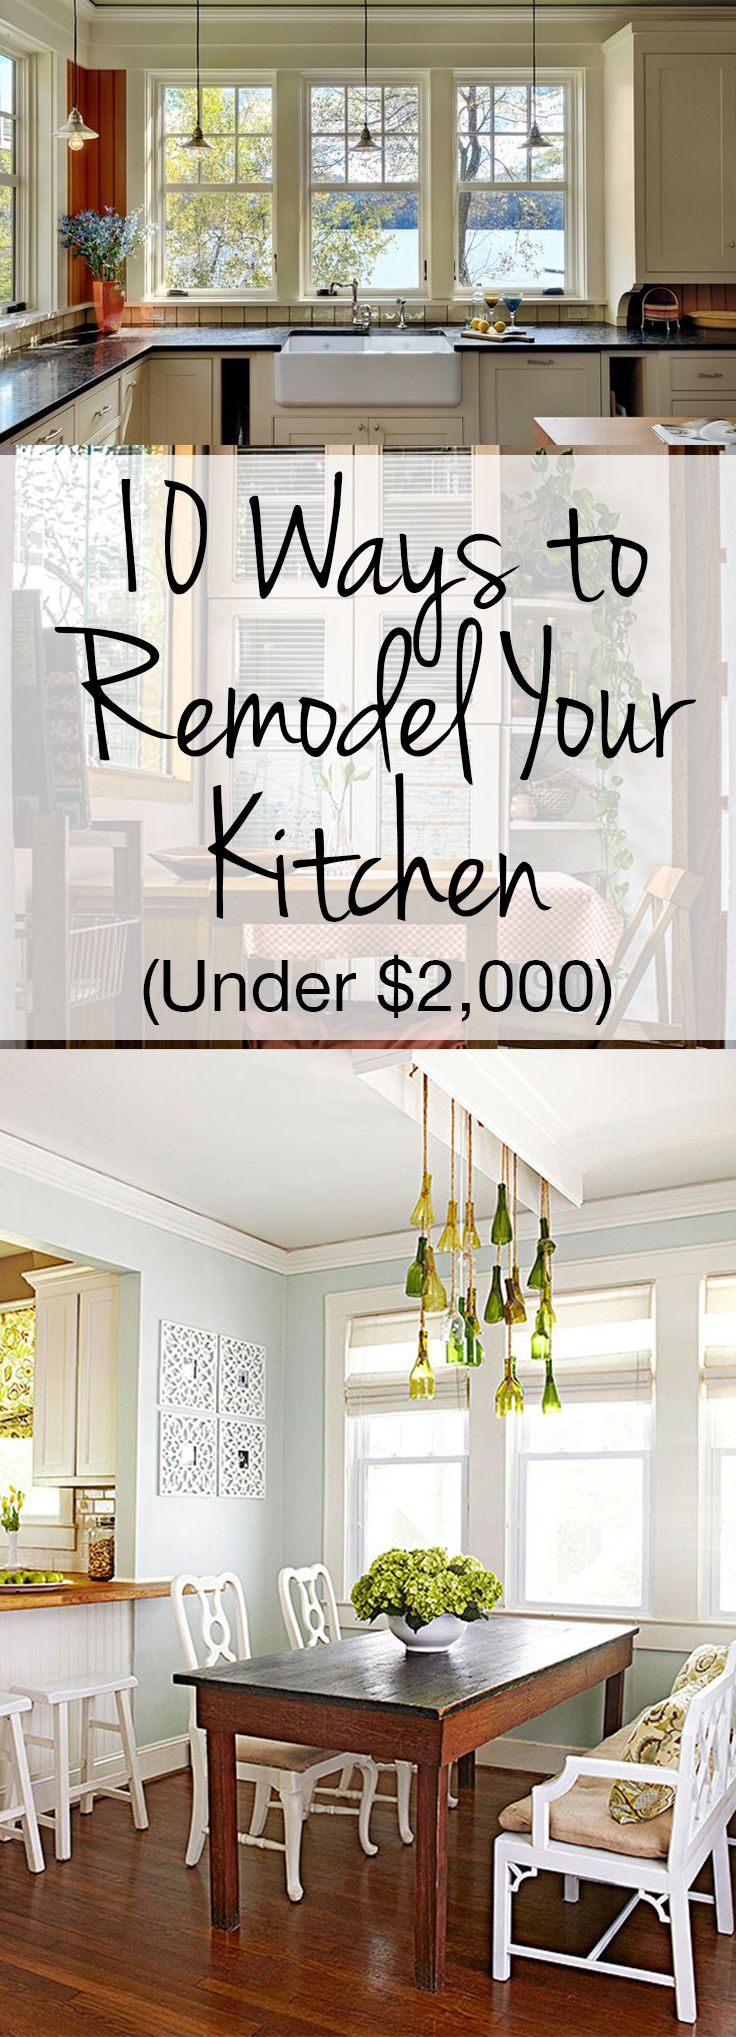 10 ways to remodel your kitchen under 2 000 cheap for Cheapest way to remodel kitchen